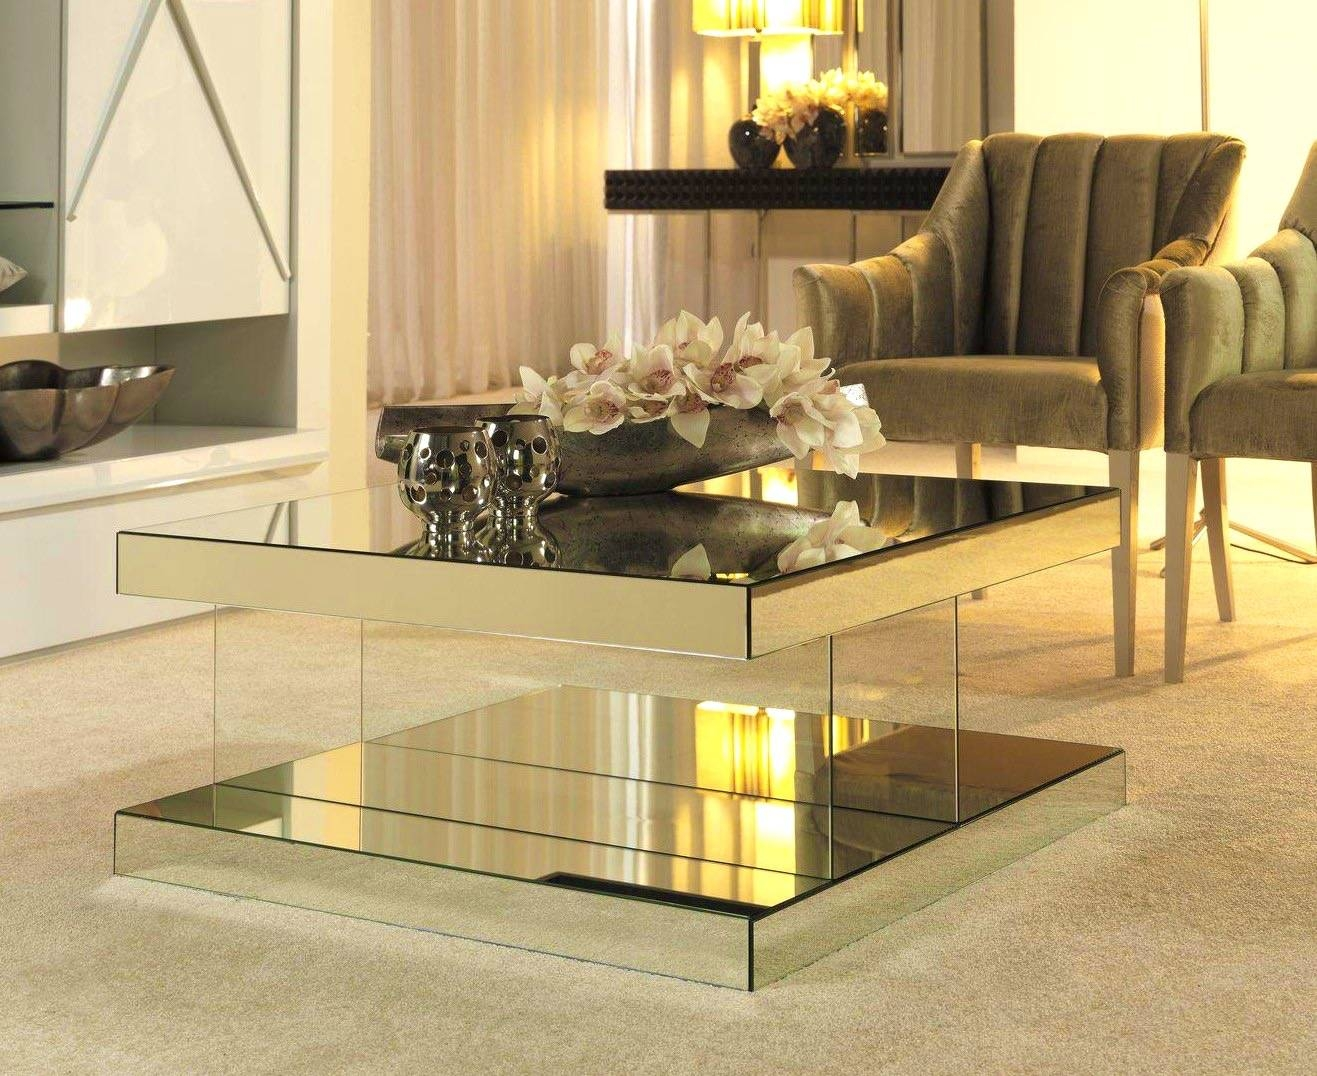 Kitchen : Fascinating Coffee Table Inexpensive Designer Mirrored within Round Mirrored Coffee Tables (Image 18 of 30)